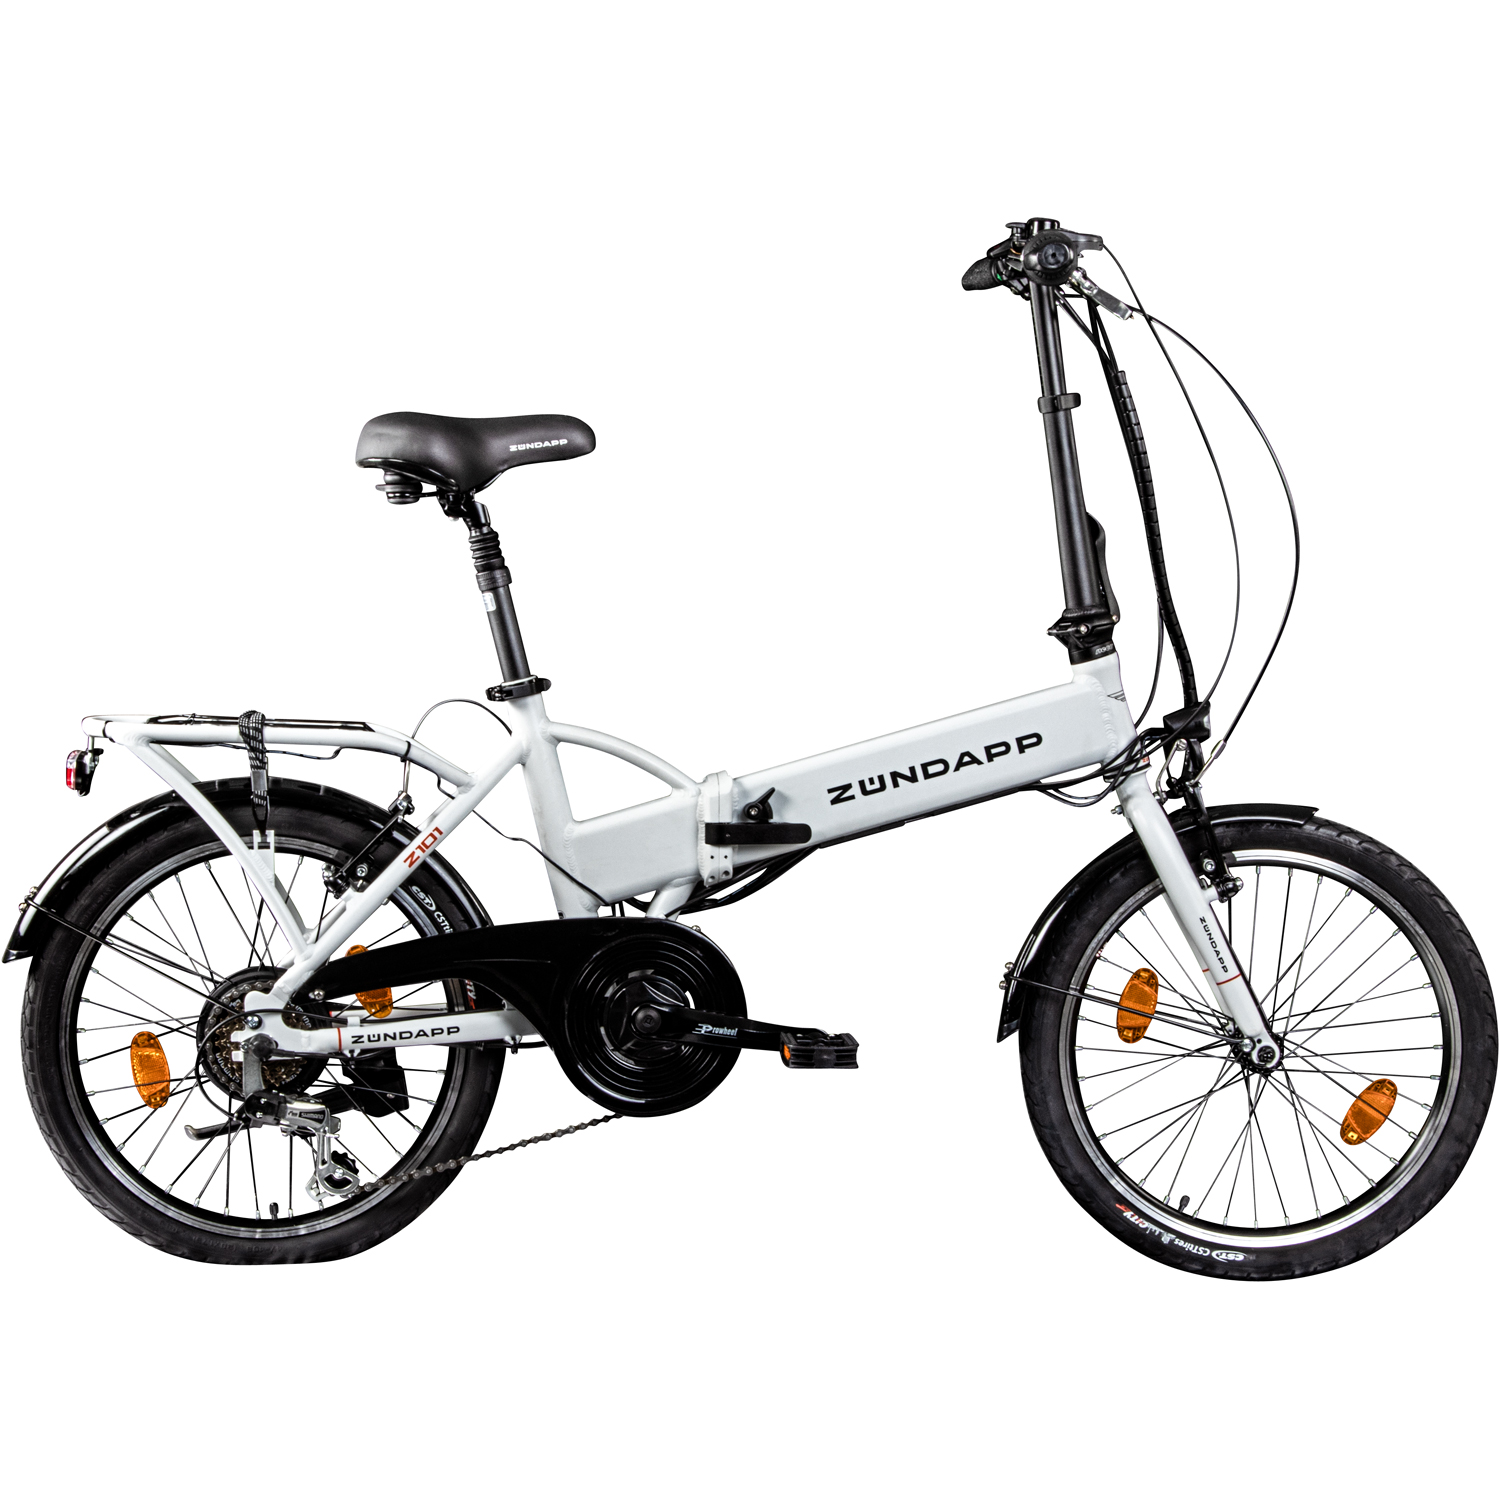 e klapprad 20 inch with case pedelec electric bike z ndapp z101 e bike ebay. Black Bedroom Furniture Sets. Home Design Ideas